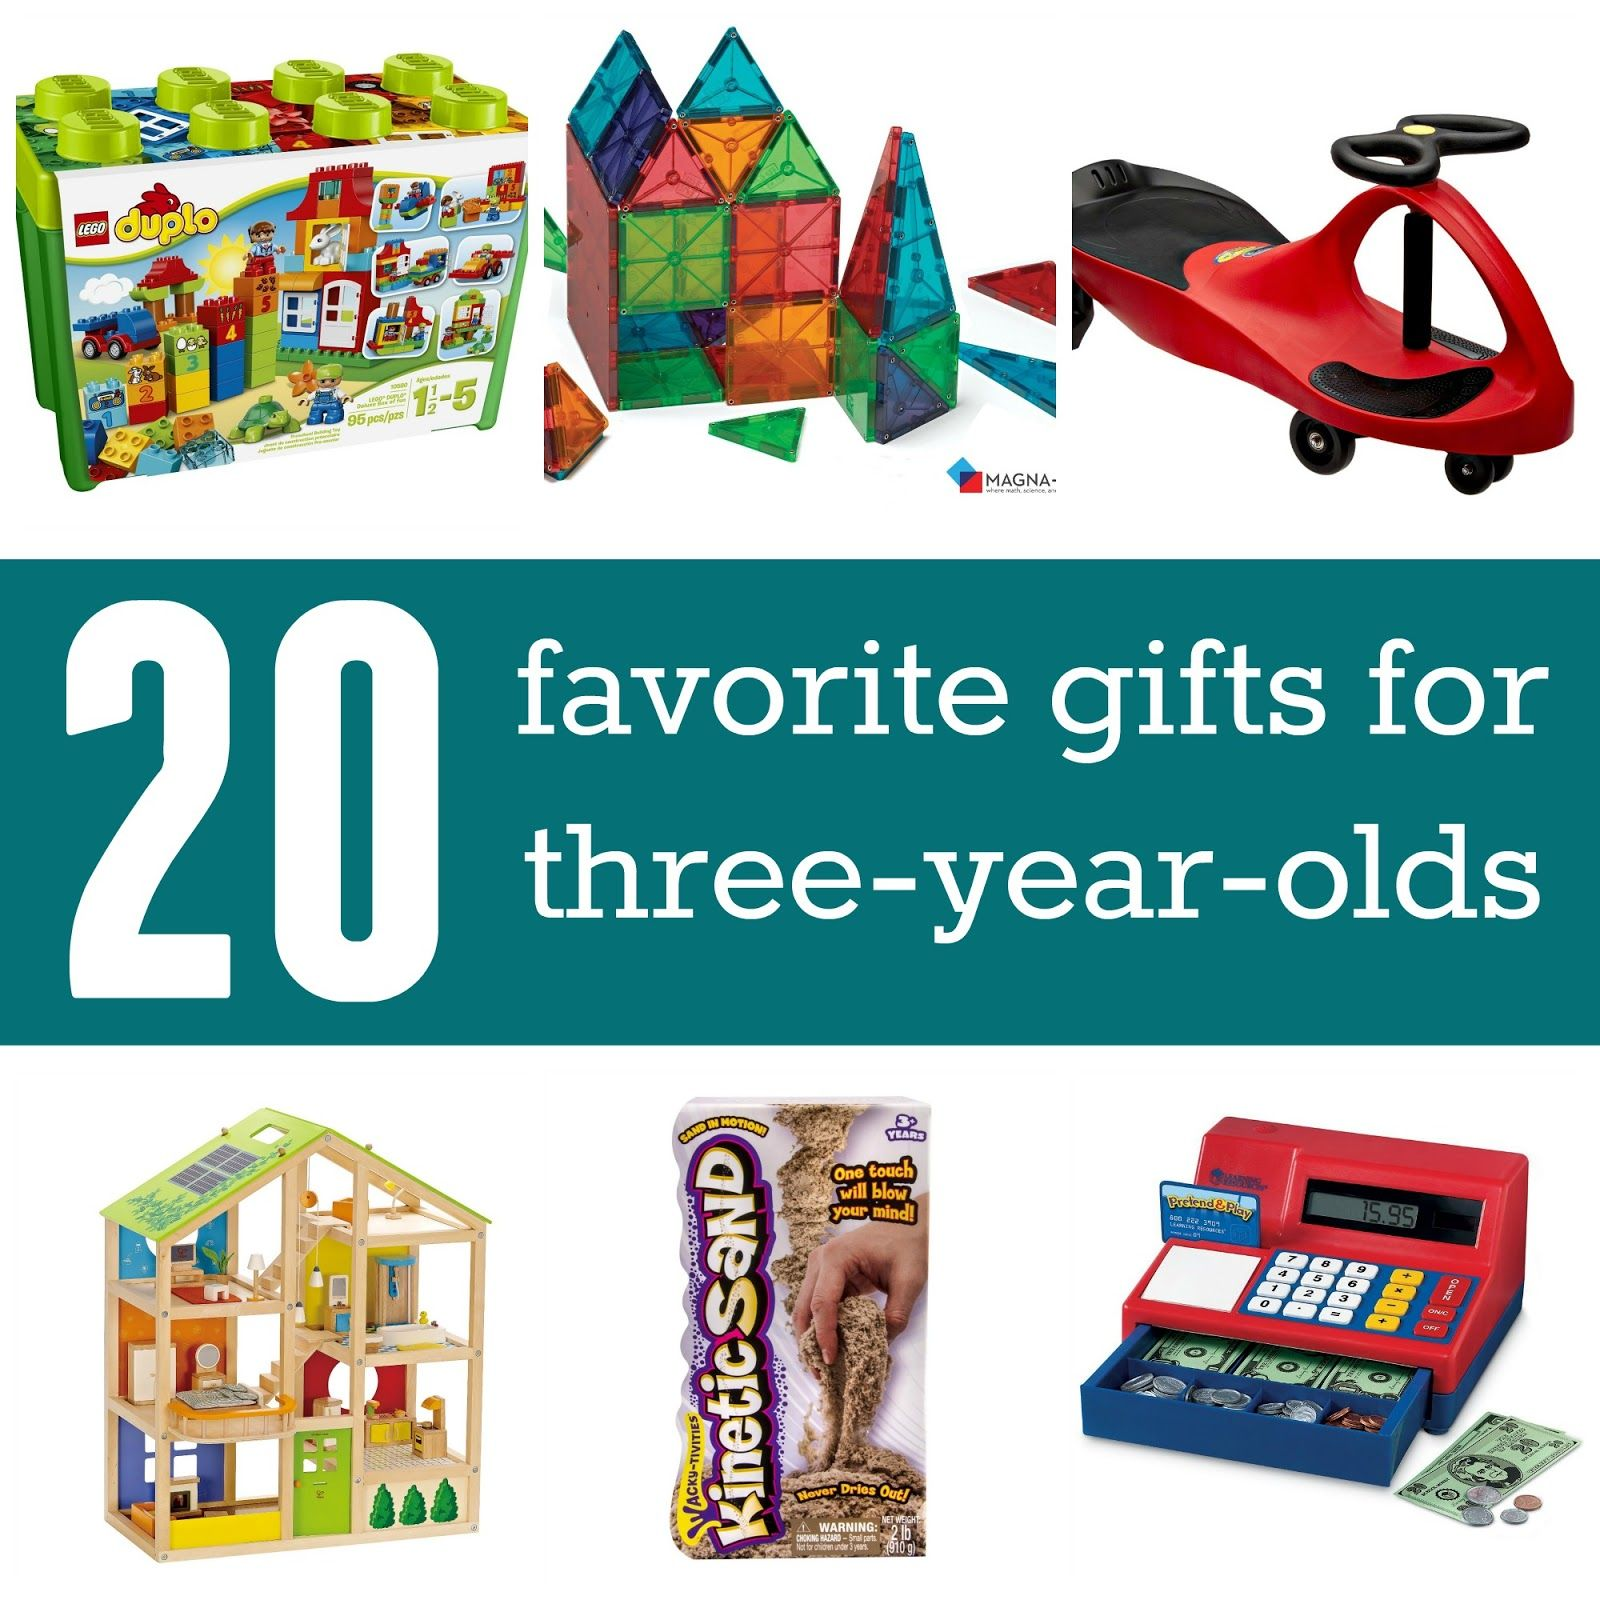 Favorite Gifts for 3 year olds